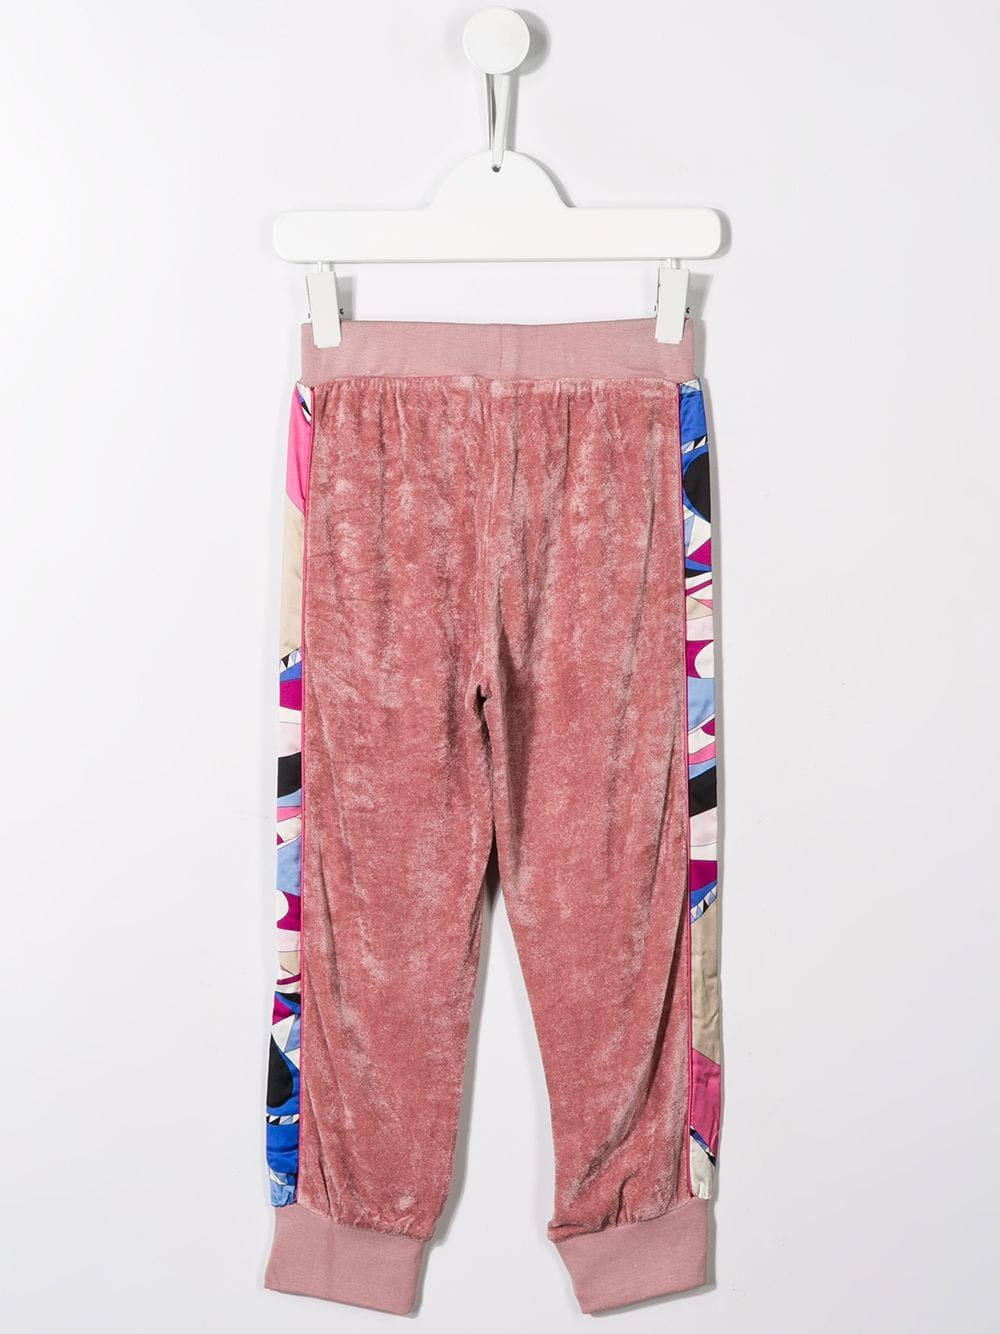 EMILIO PUCCI JUNIOR side print velvet track pants - Maison De Fashion